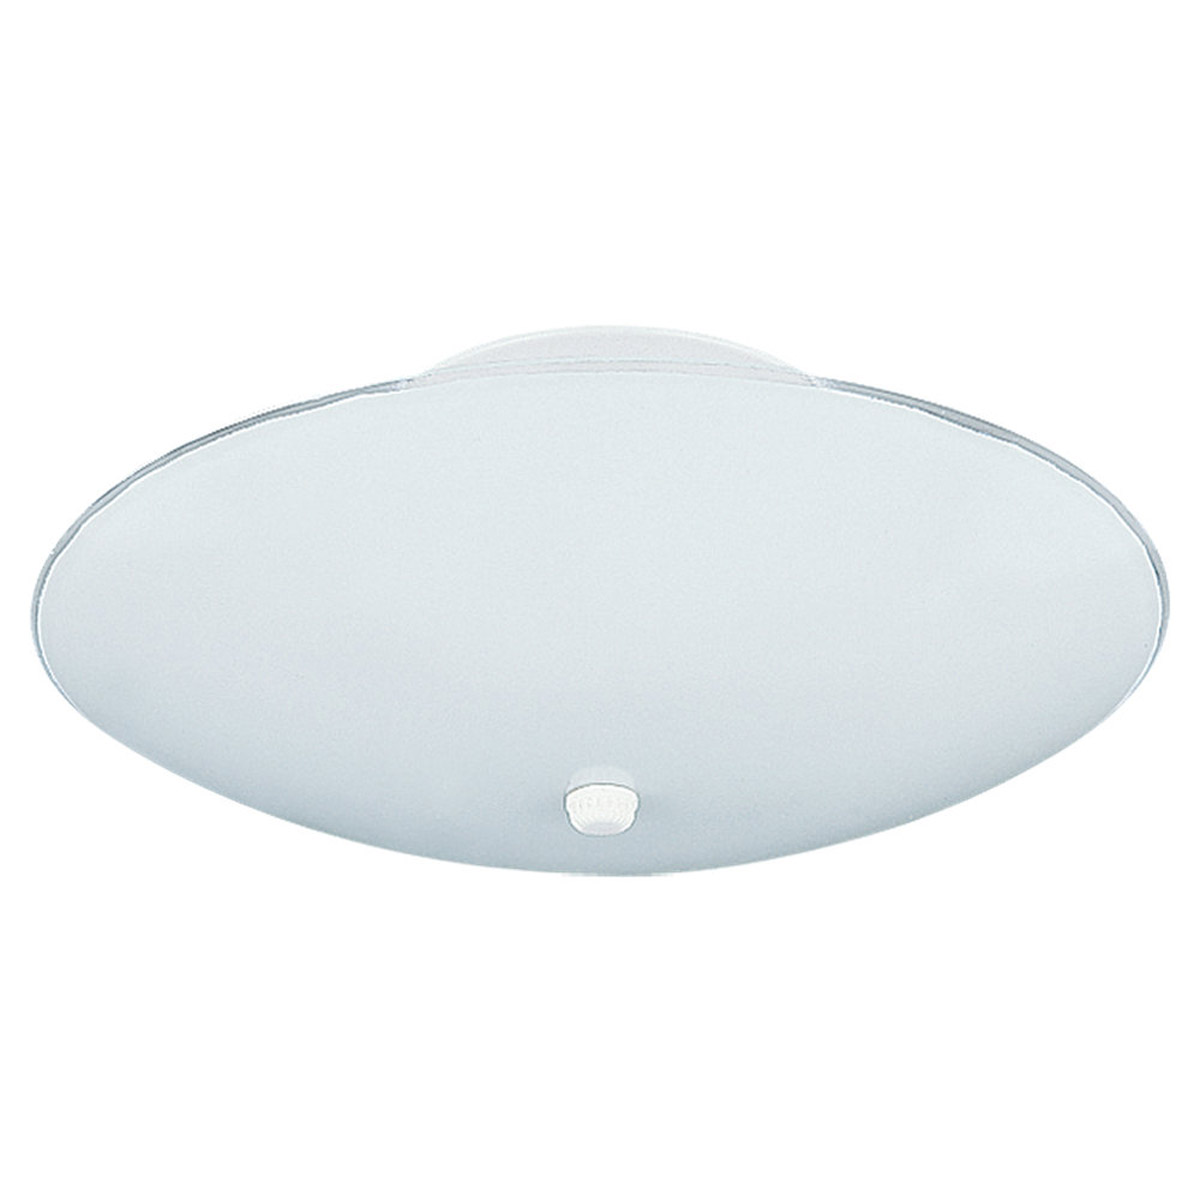 Sea Gull Lighting Bent Glass 3 Light Semi Flush Mount in White 7355-15 photo